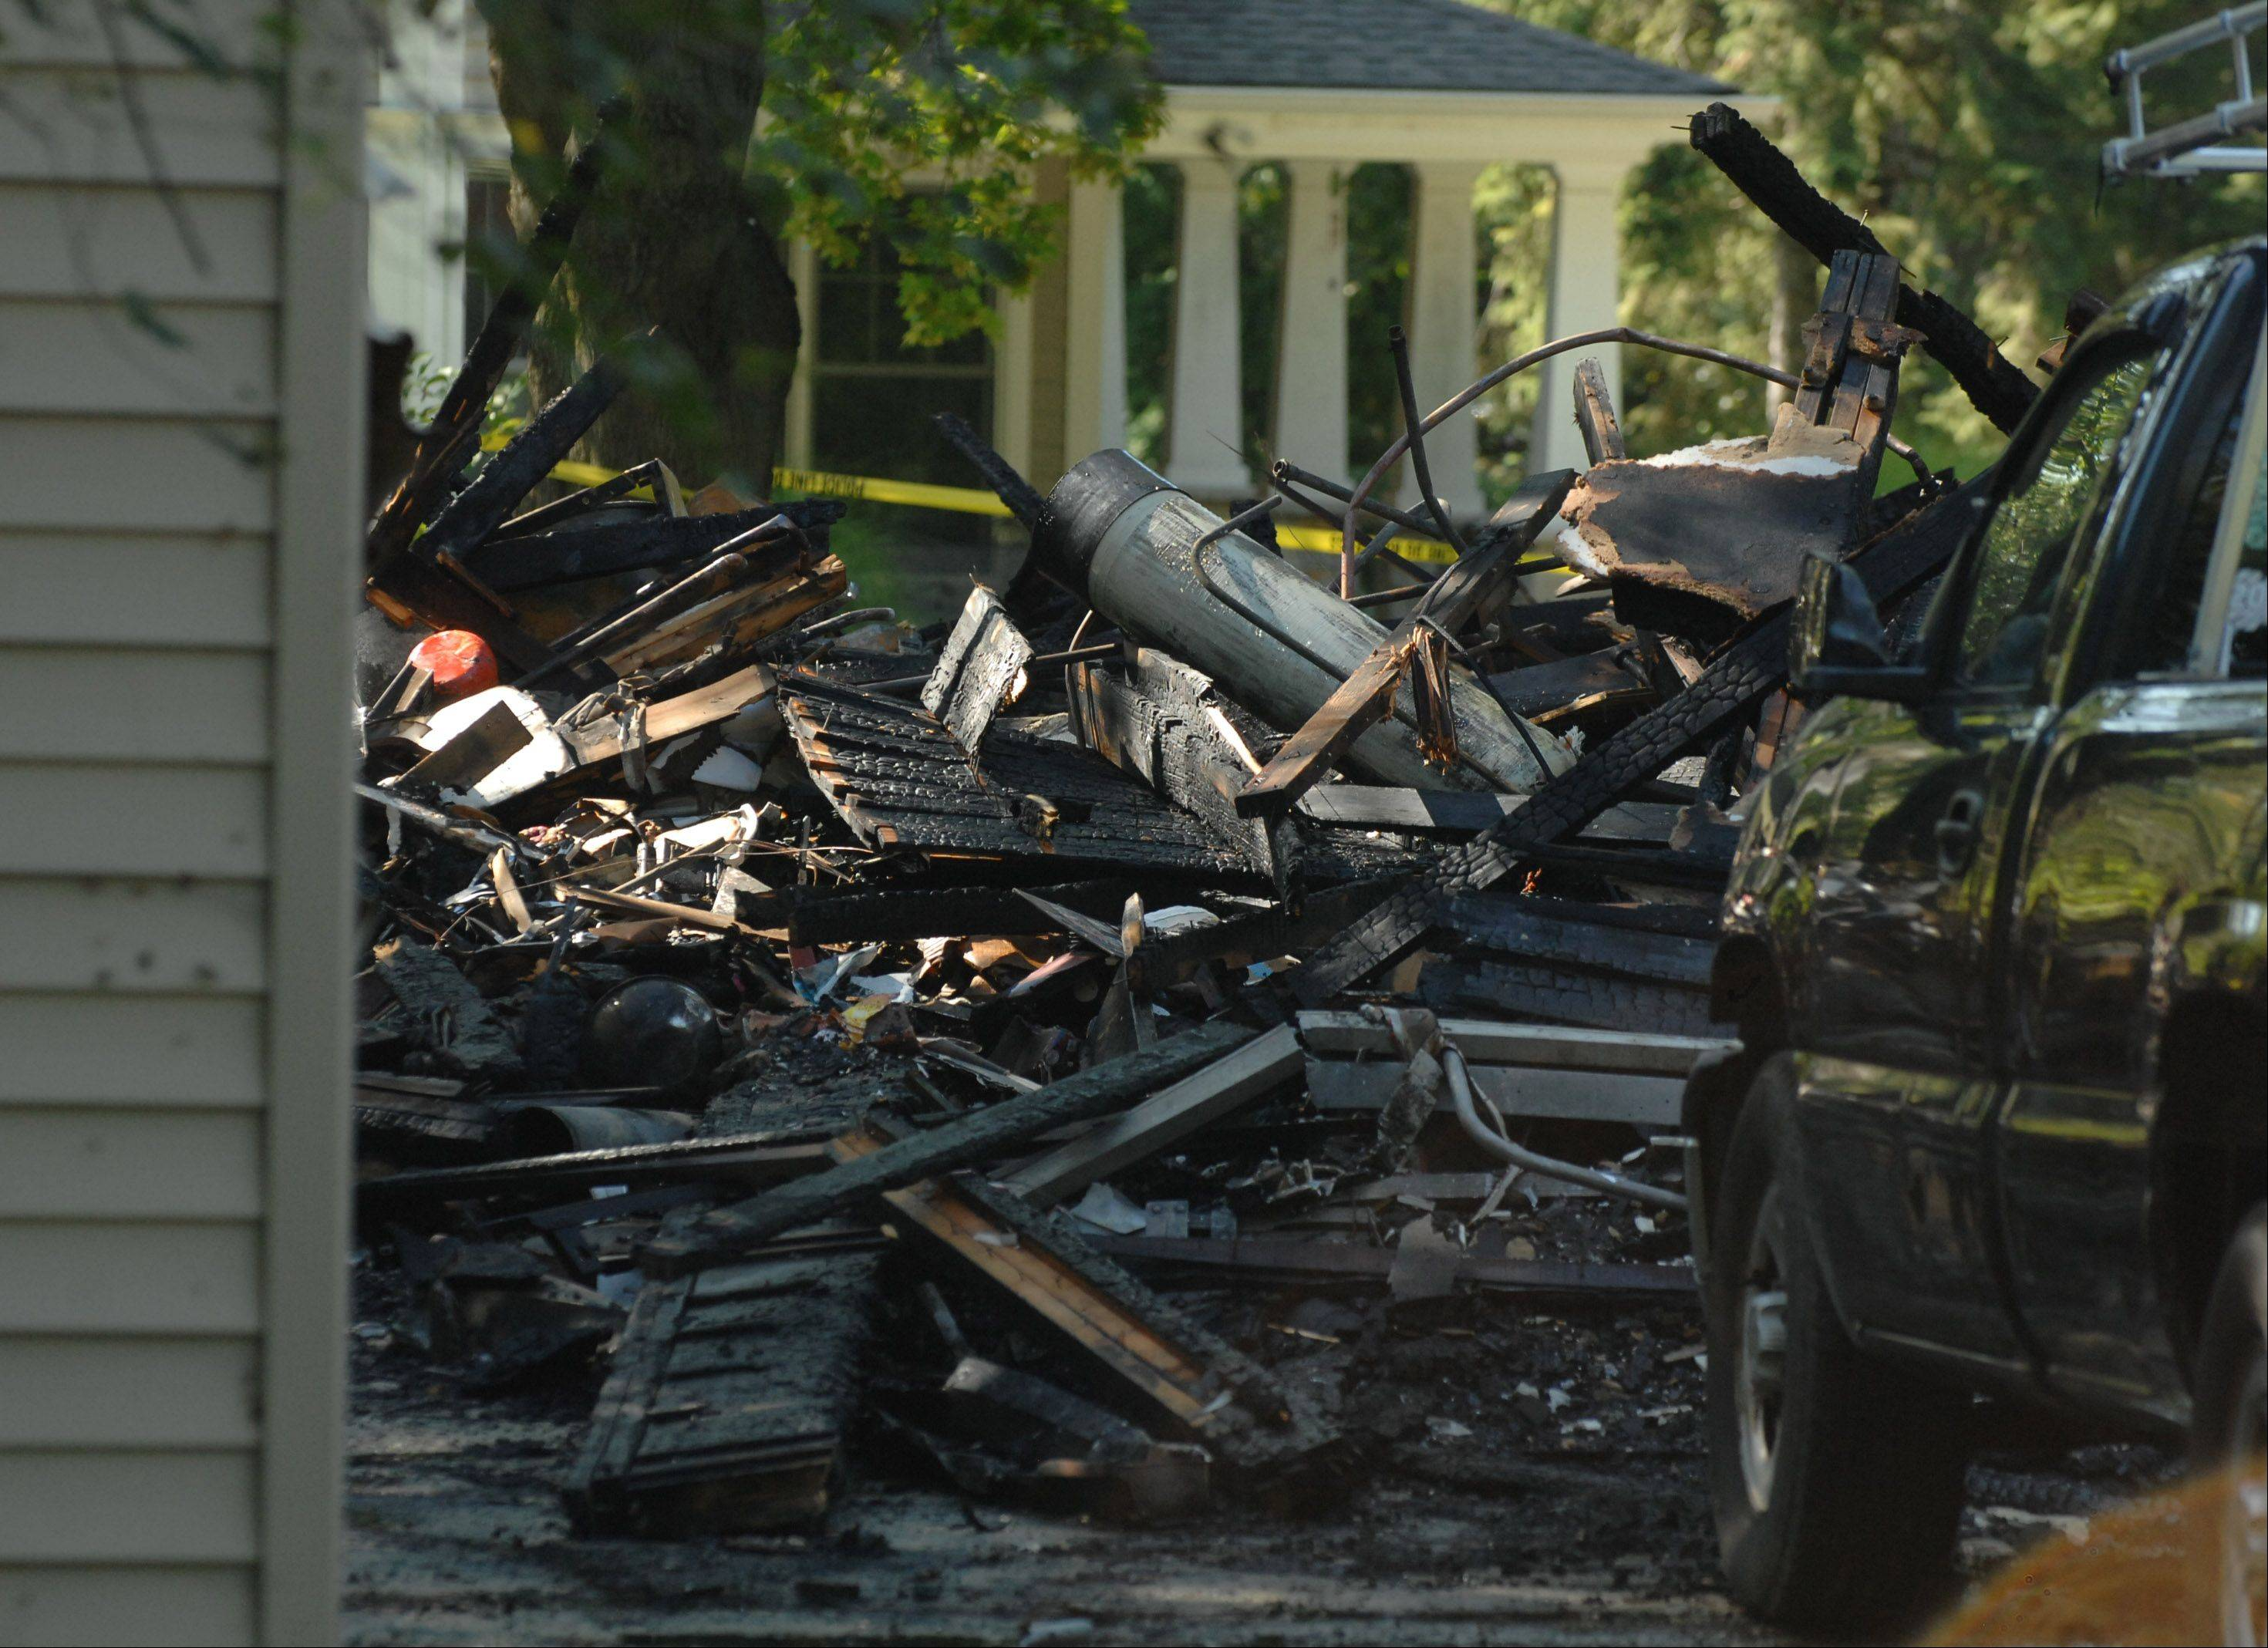 A two-story, single-family house in Warrenville was reduced to rubble after a blaze broke out there about 5 a.m. Saturday, severely burning 33-year-old Will Lowe.